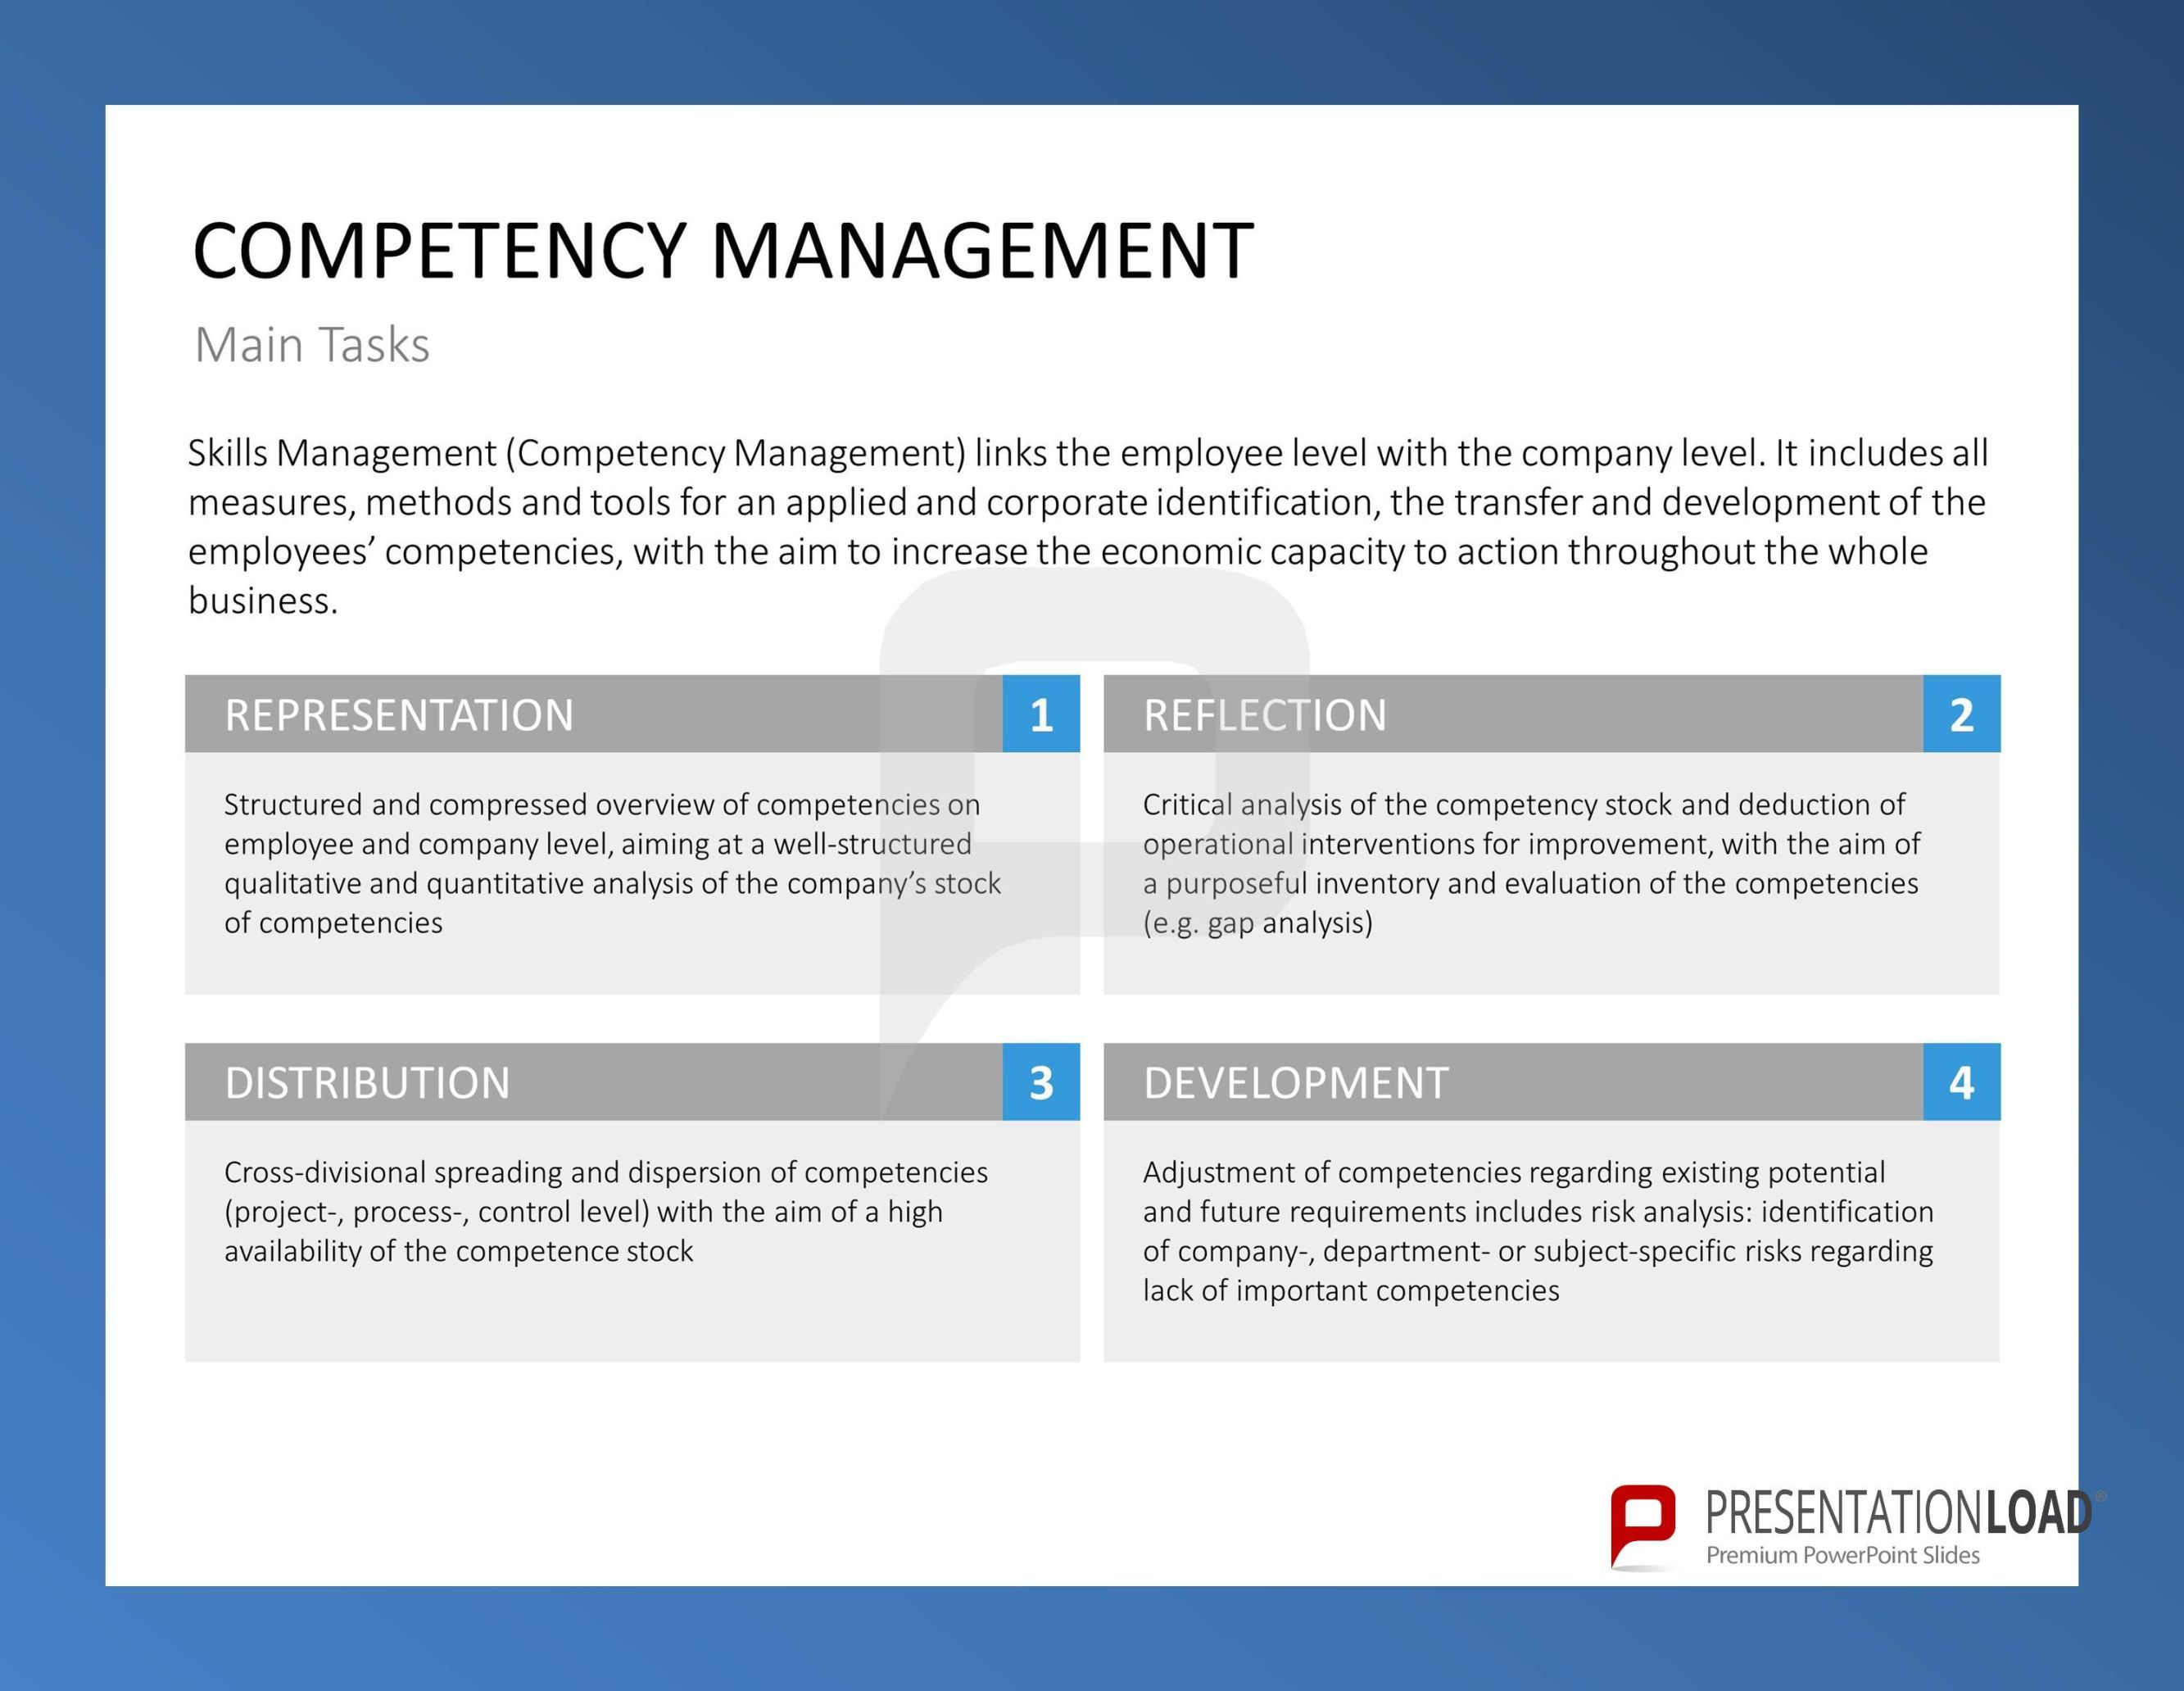 COMPETENCY MANAGEMENT Main Tasks: Skills Management links the ...